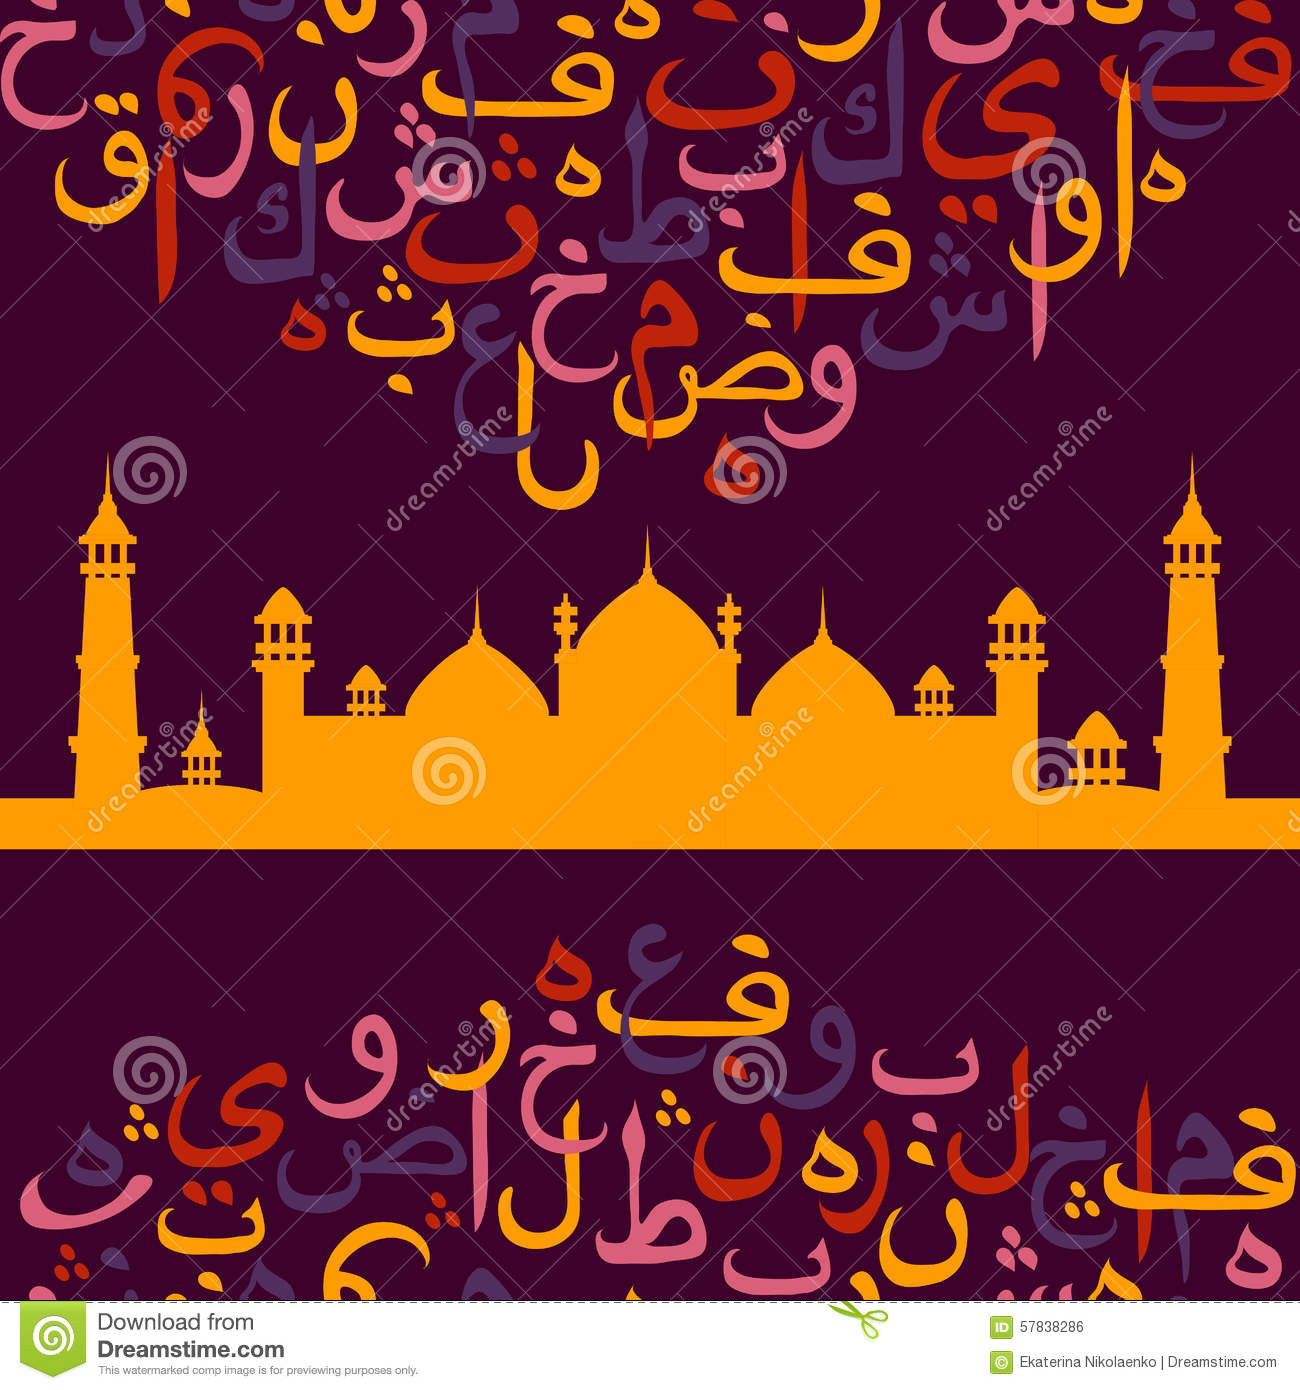 Simple Board Eid Al-Fitr Decorations - seamless-pattern-ornament-arabic-calligraphy-text-eid-mubarak-mosque-concept-muslim-community-festival-eid-al-fitr-eid-57838286  HD_512657 .jpg